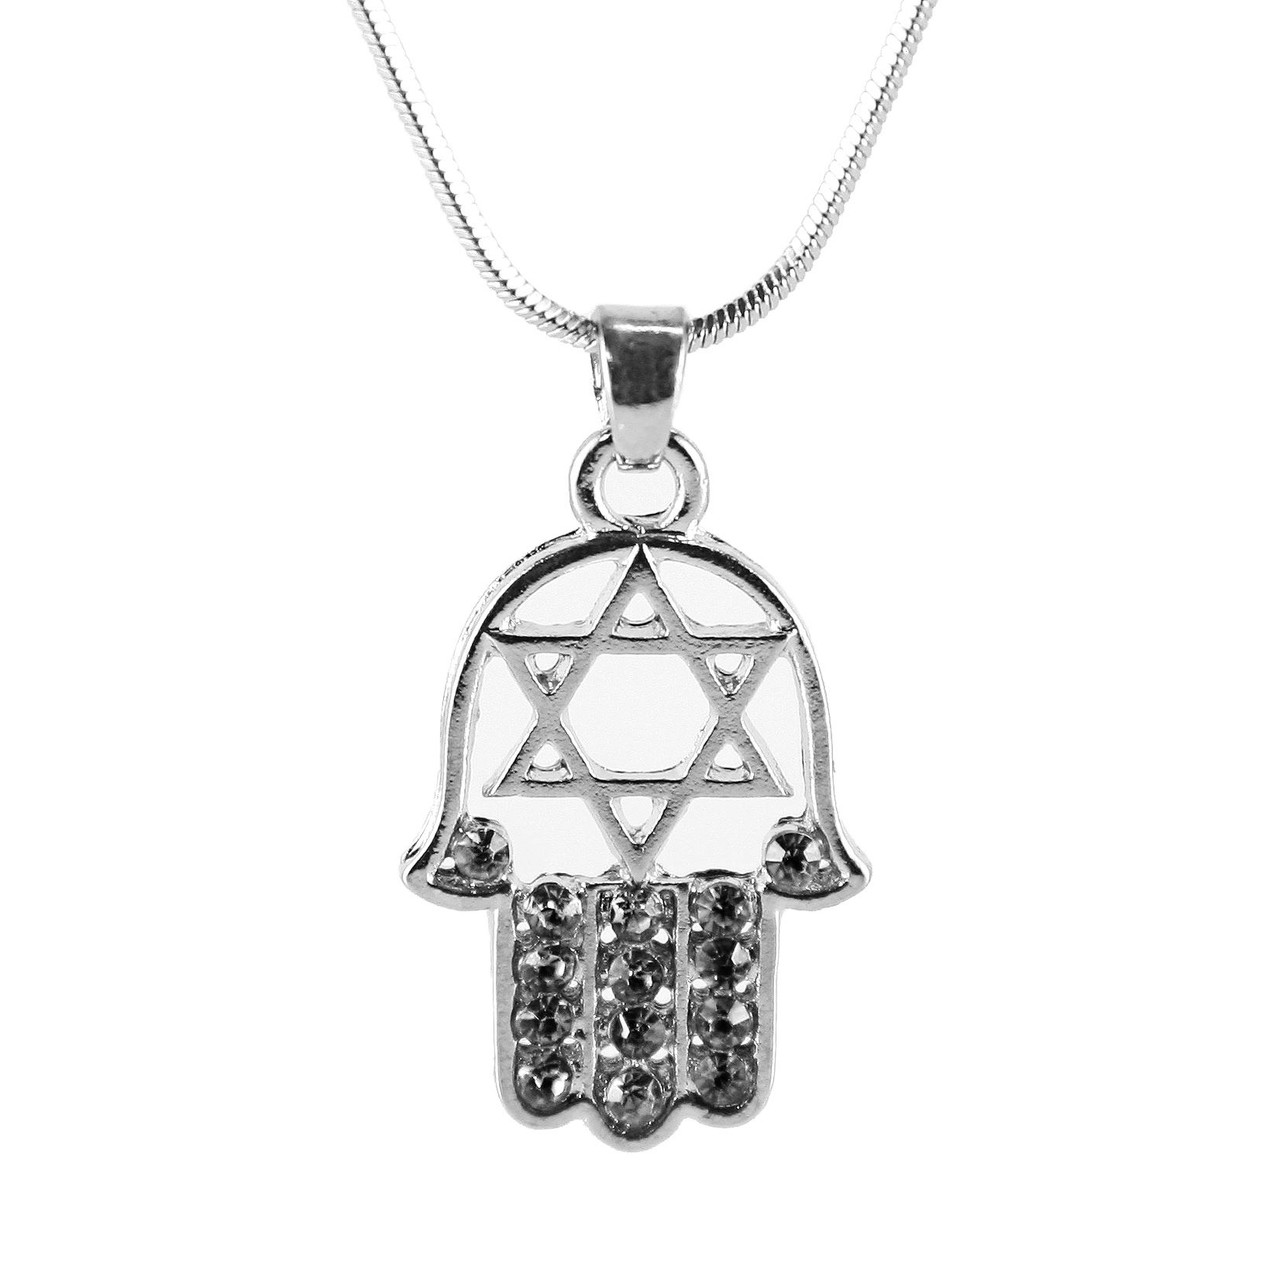 Jewish Hamsa Hand of Fatima Kabbalah Charm Pendant Black Leather Necklace